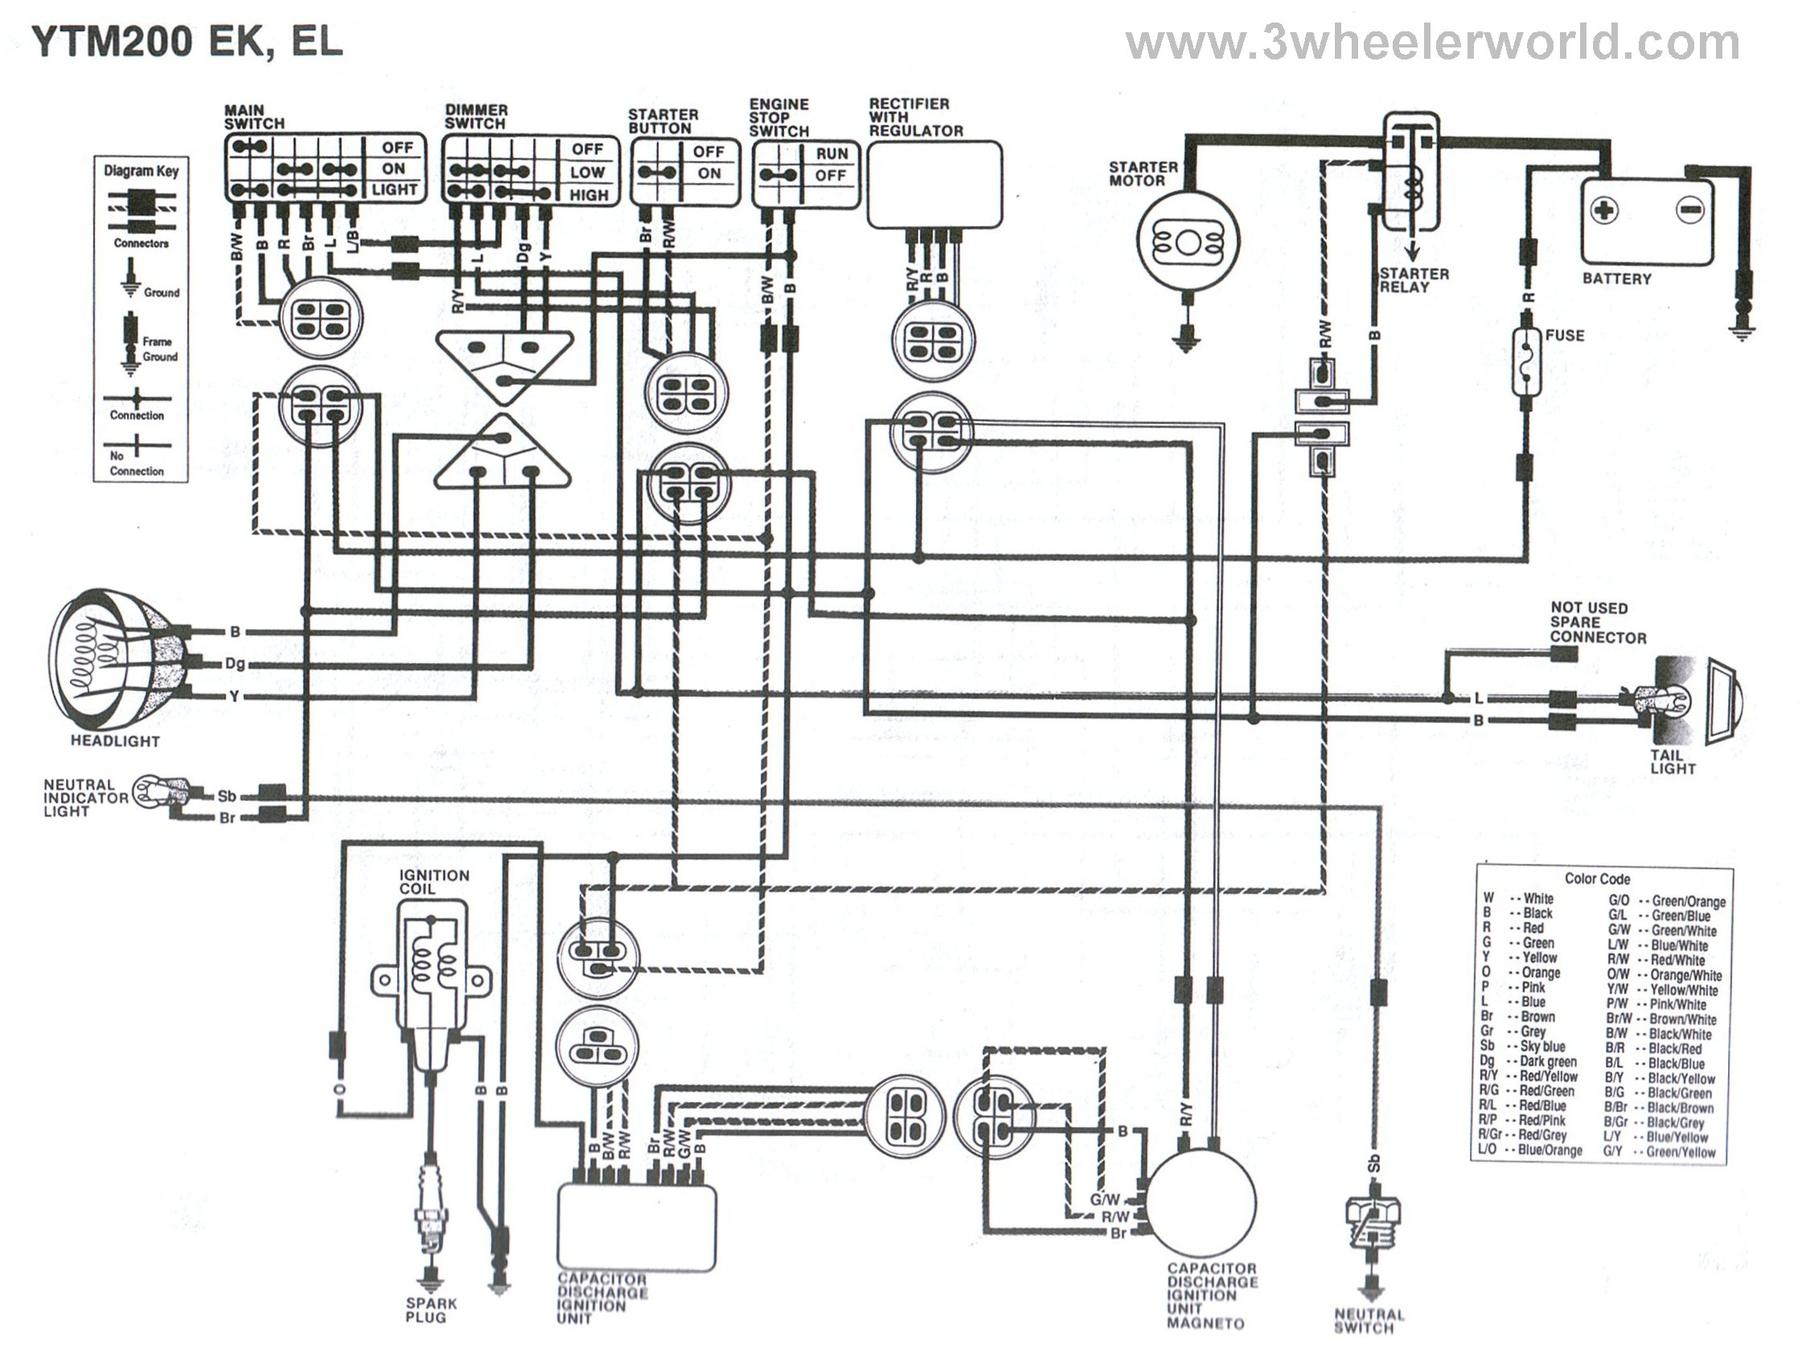 yamaha tach wiring diagram yamaha motor wiring diagram 3wheeler world - add new section #15